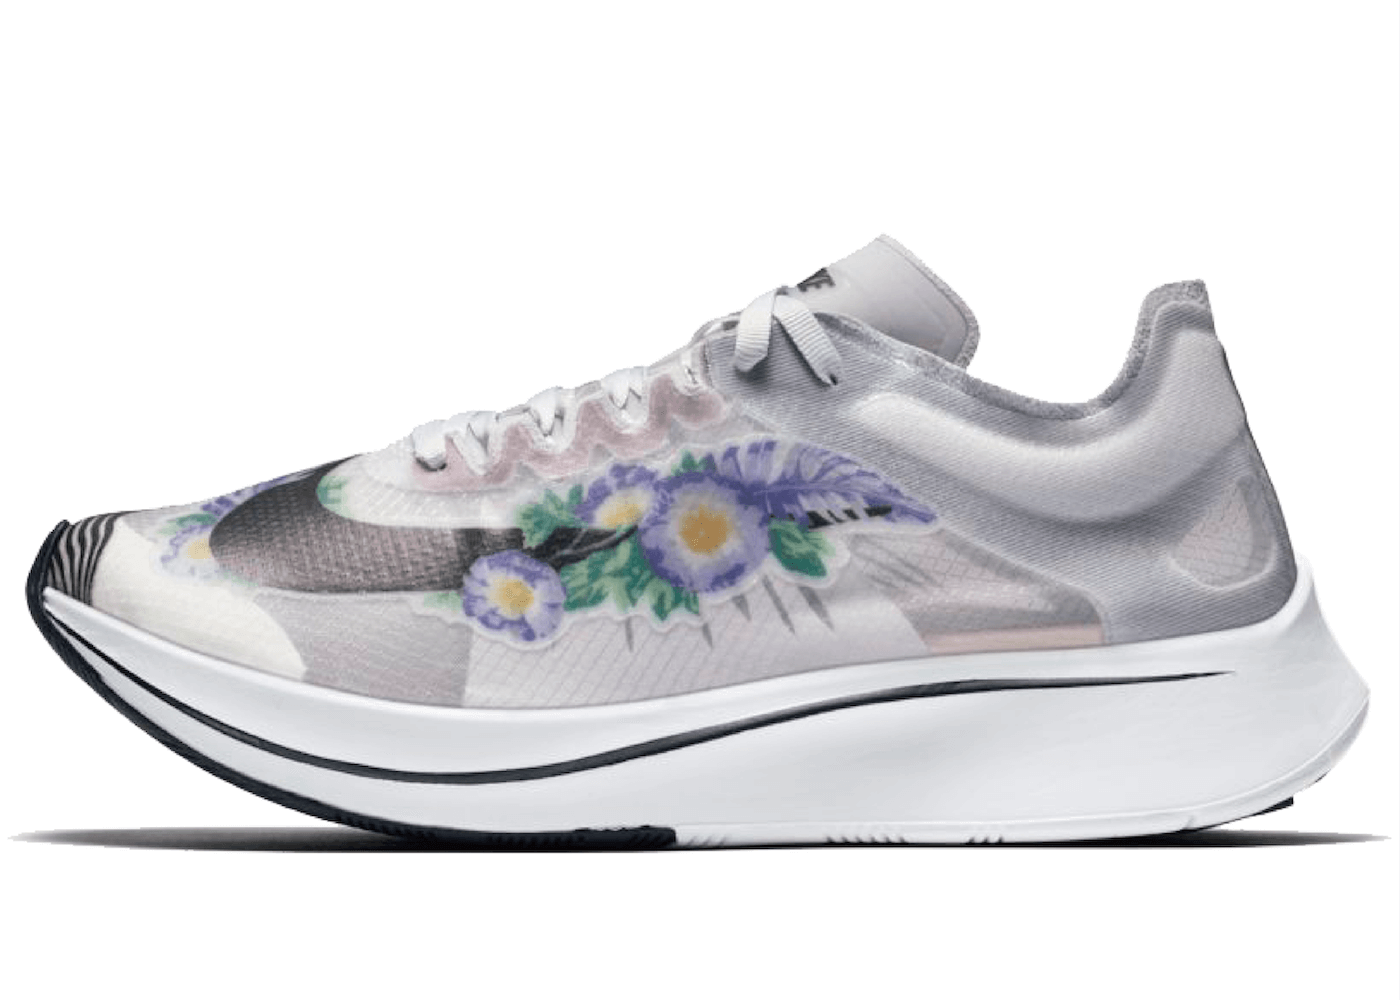 Nike Zoom Fly Pure Platinum Floral (W)の写真